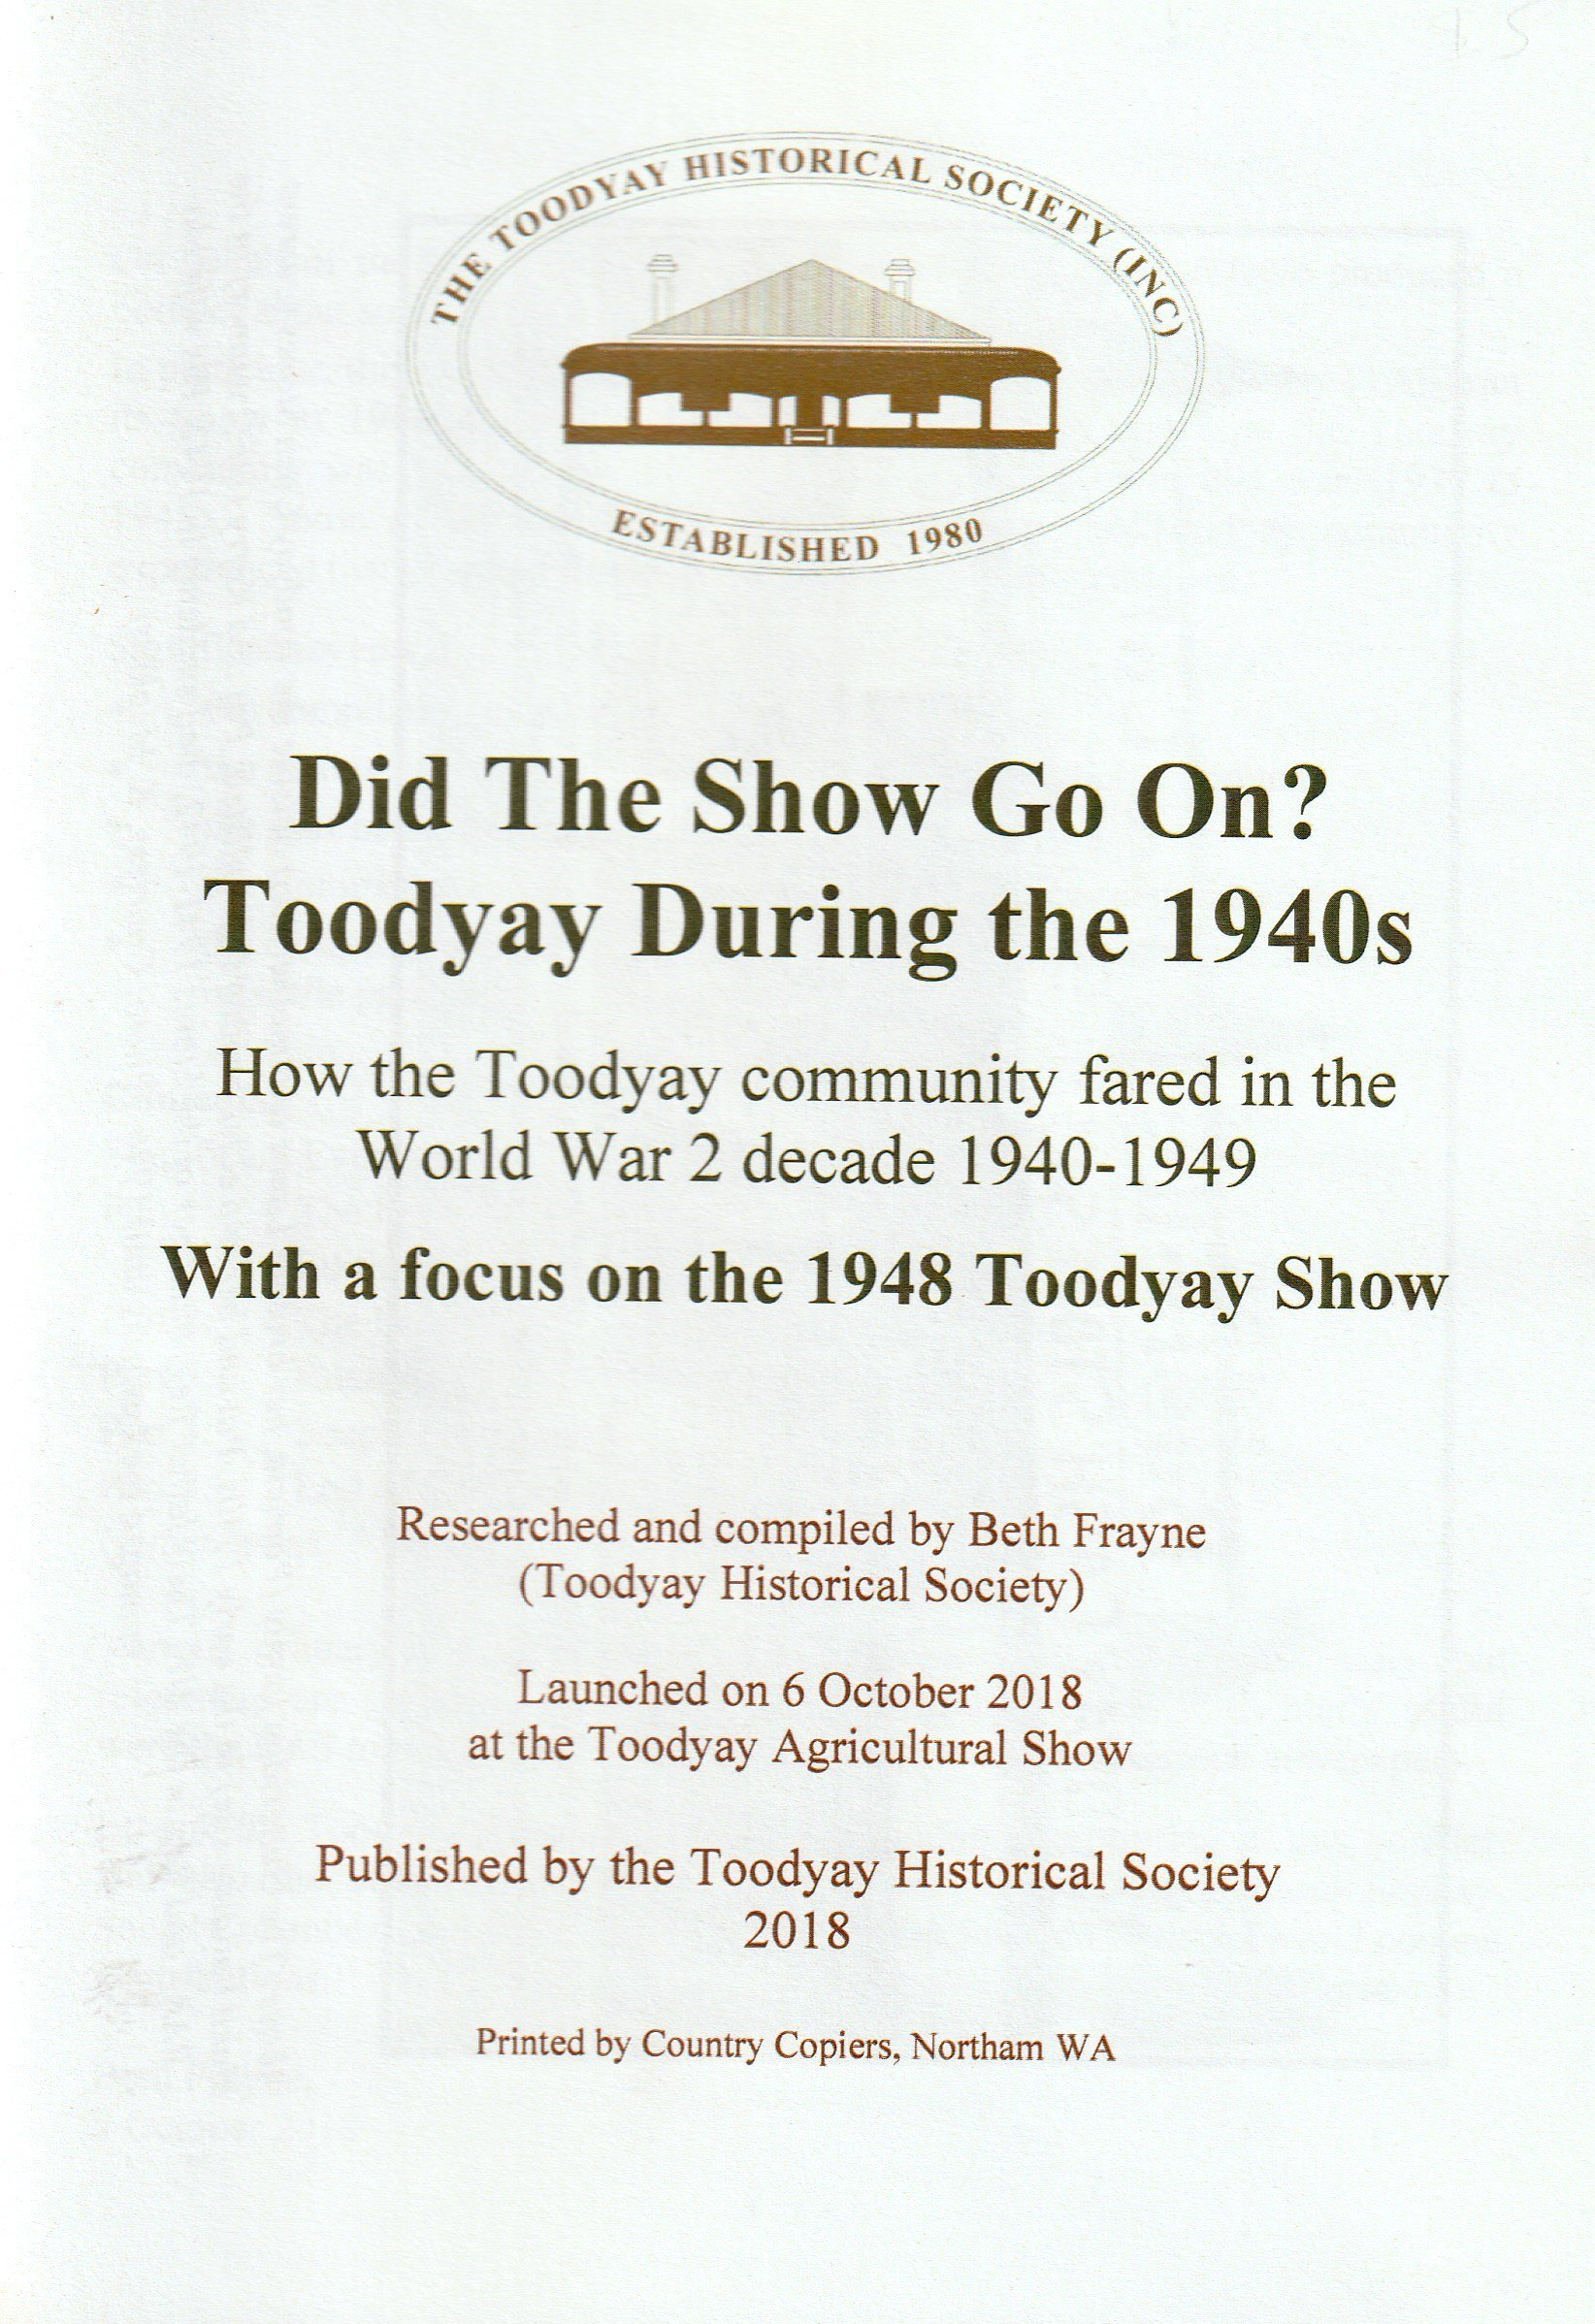 Did the Show go on: Toodyay during the 1940s:  how the Toodyay community fared in the World War 2 decade, with a focus on the 1948 Toodyay Show